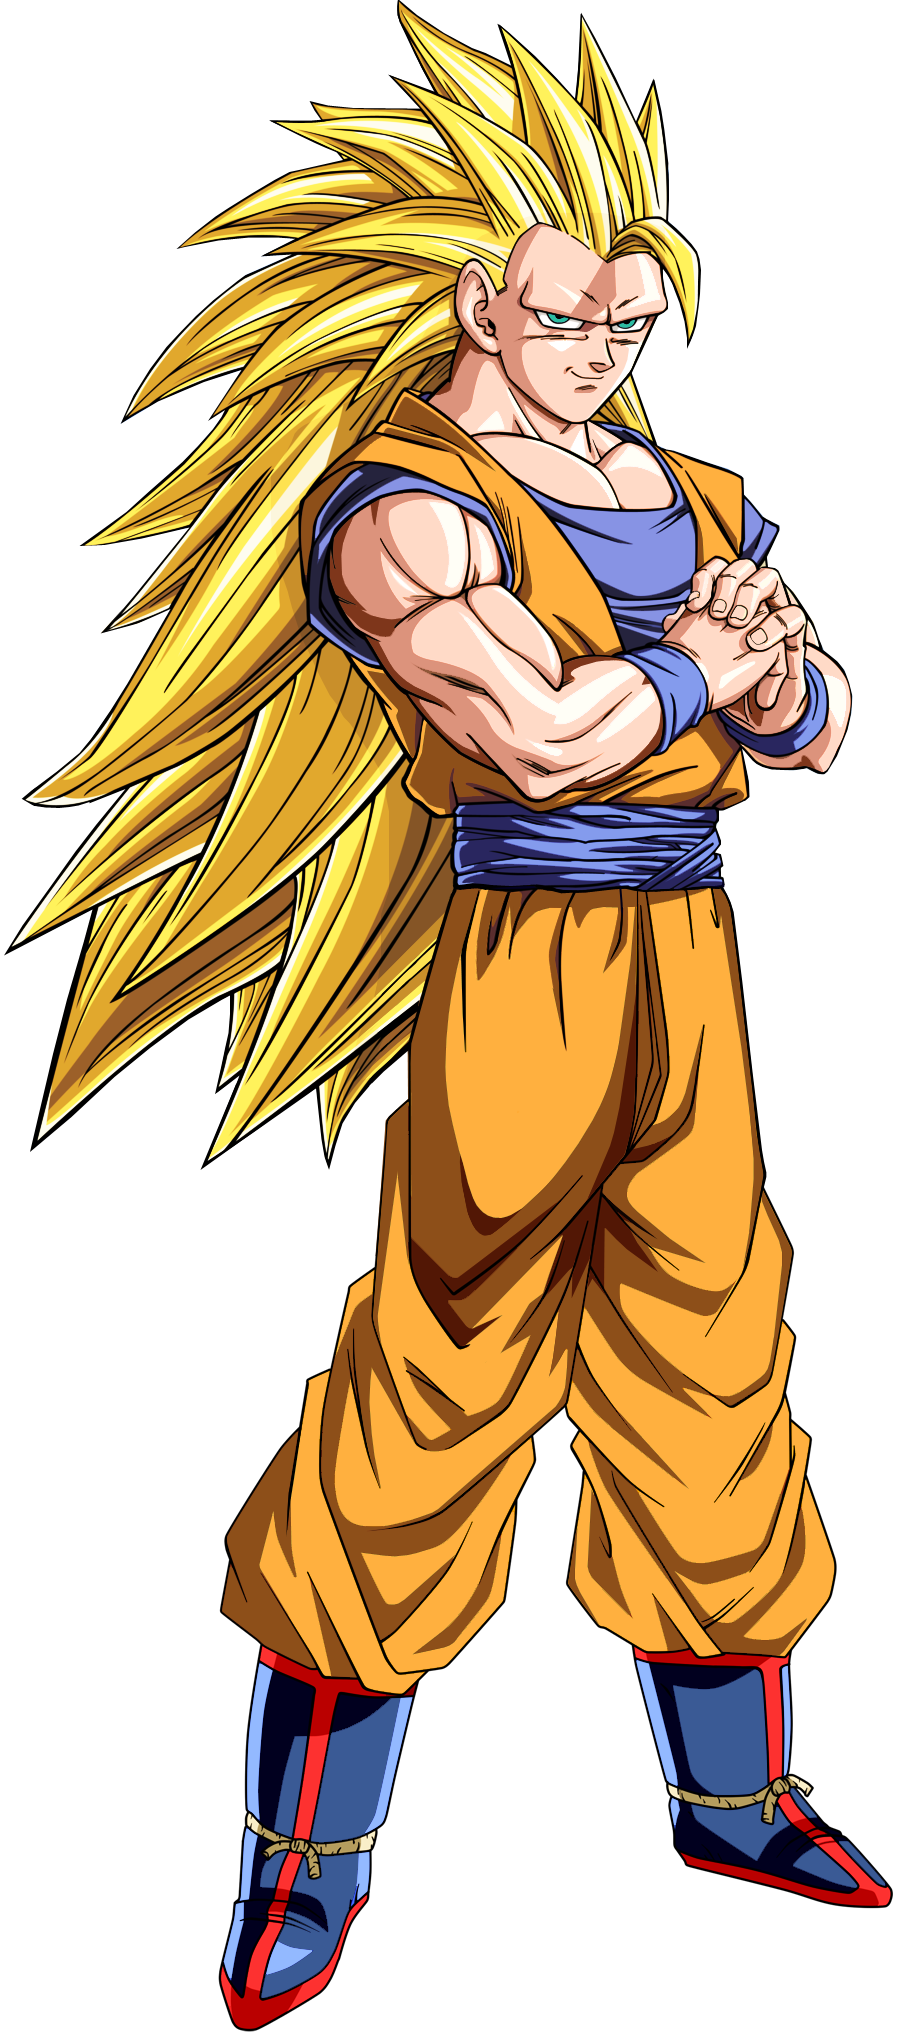 Super saiyan 3 goku png. Image dragon ball z